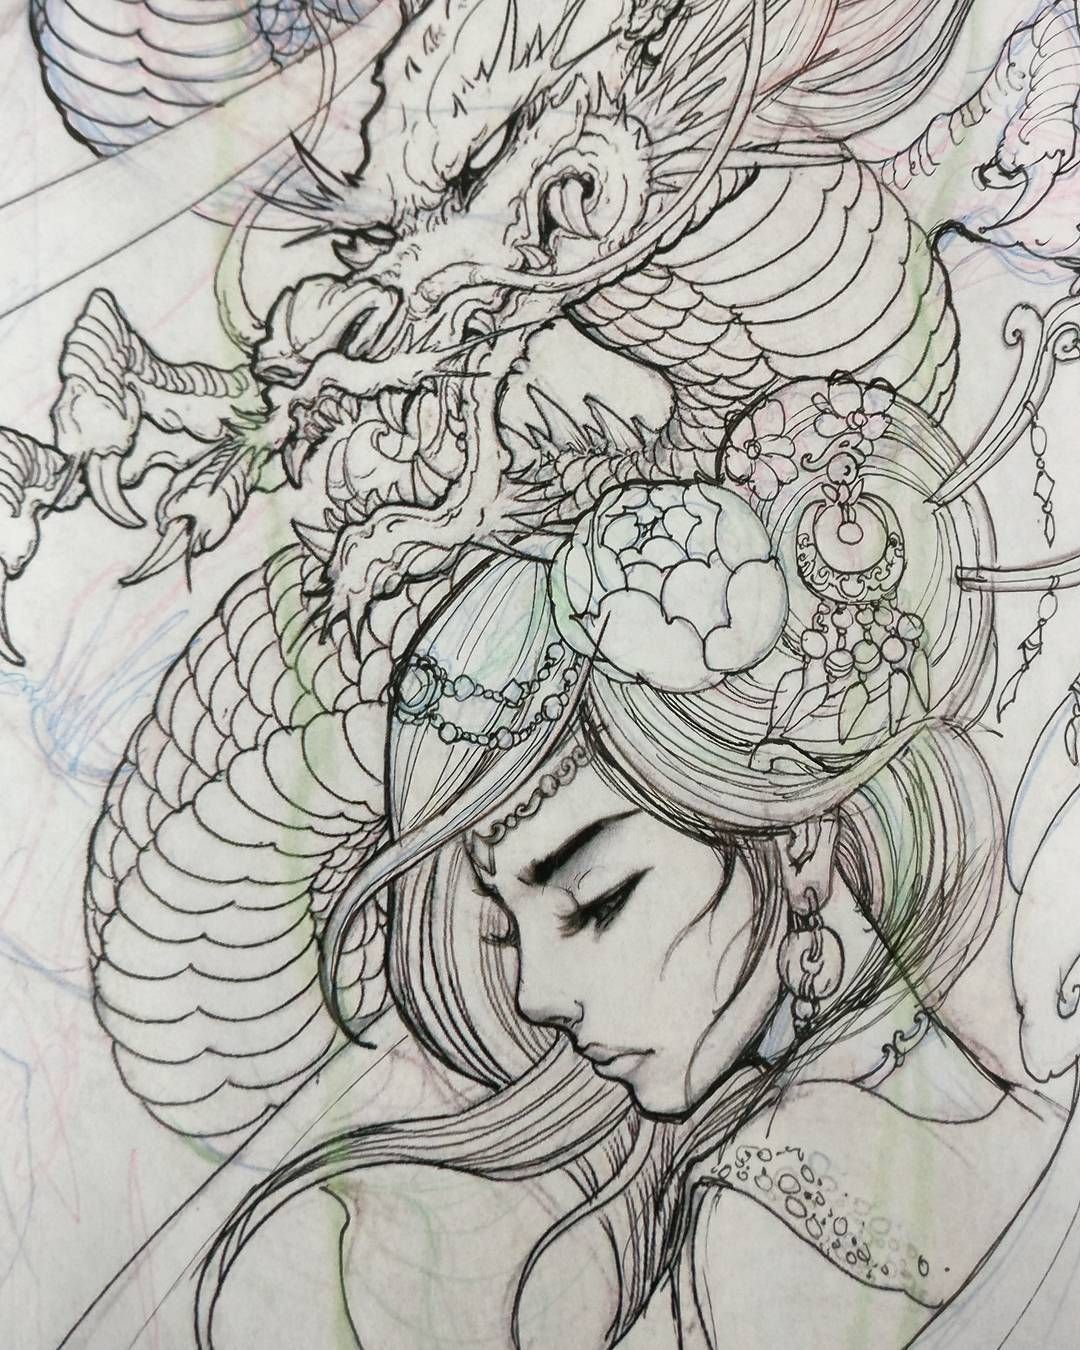 Upcoming Project Sketch Illustration Drawing Irezumi Geisha Dragon Chronicink Asianink Asiantattoo Tattoo Tatuagens De Dragao Japones Tatuagem Gueixa Japonesa E Japan Tattoo